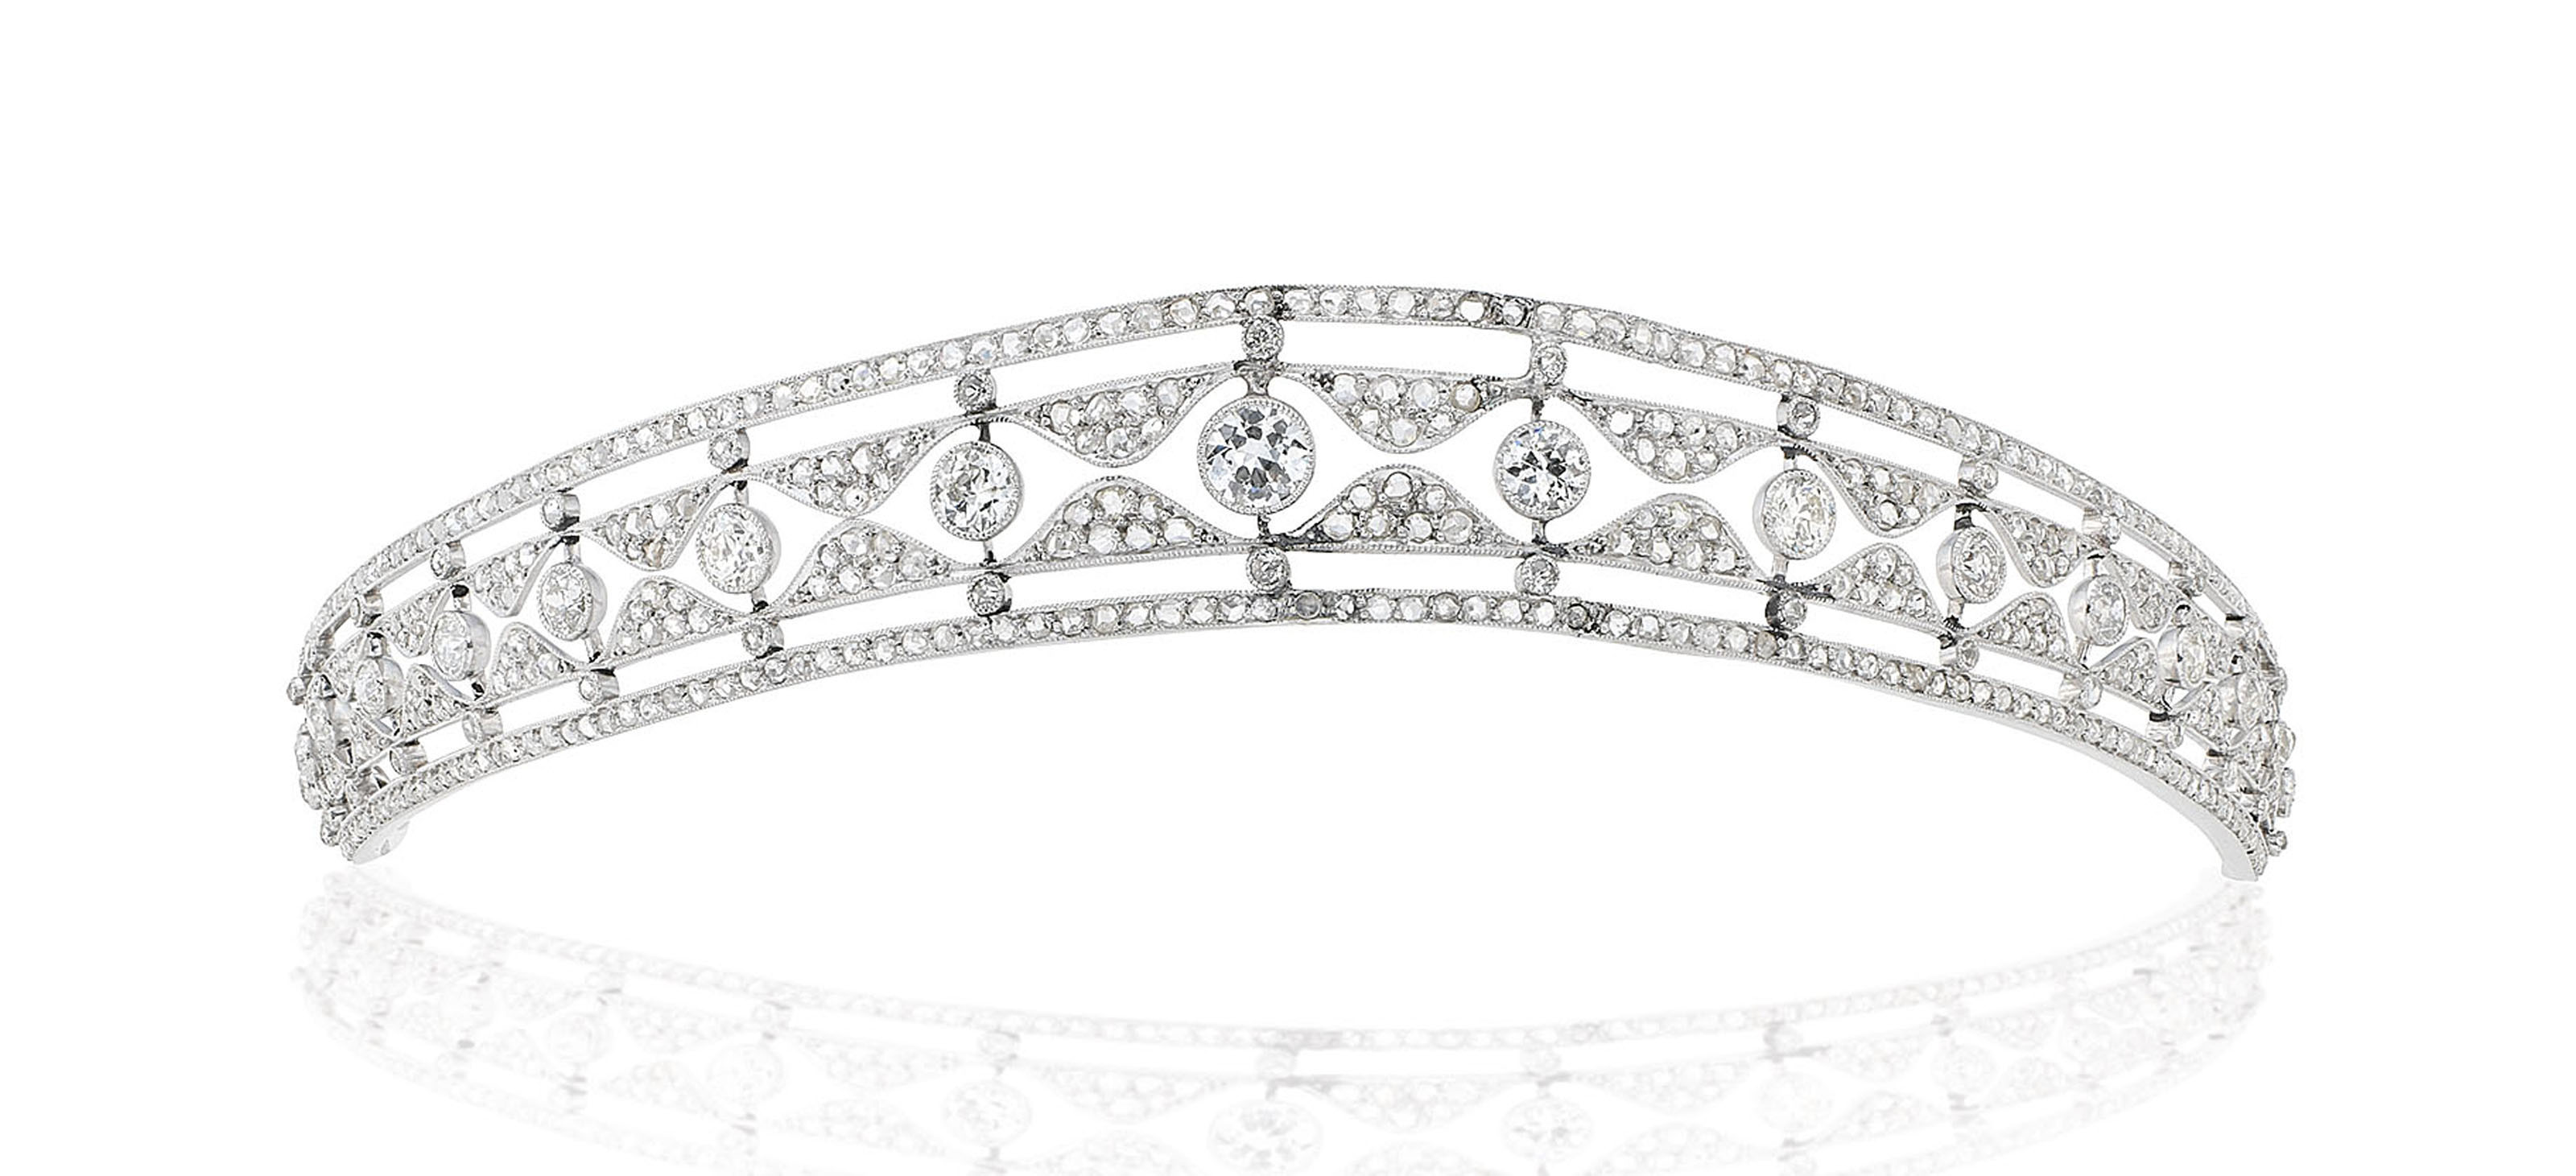 EARLY 20TH CENTURY DIAMOND TIARA